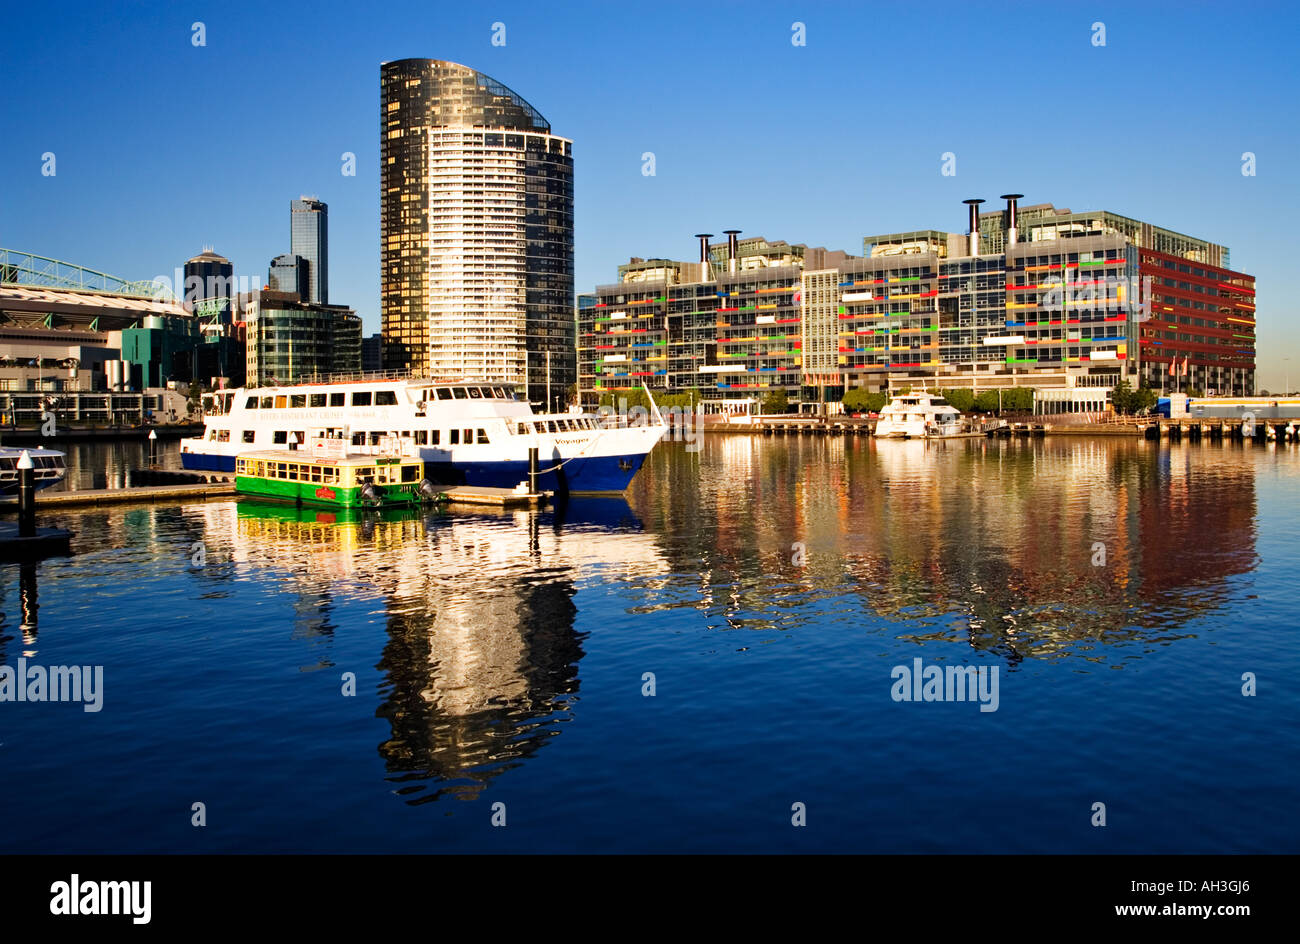 Melbourne Docklands / The Melbourne Skyline as seen from Victoria Harbour in Melbourne Victoria Australia. - Stock Image